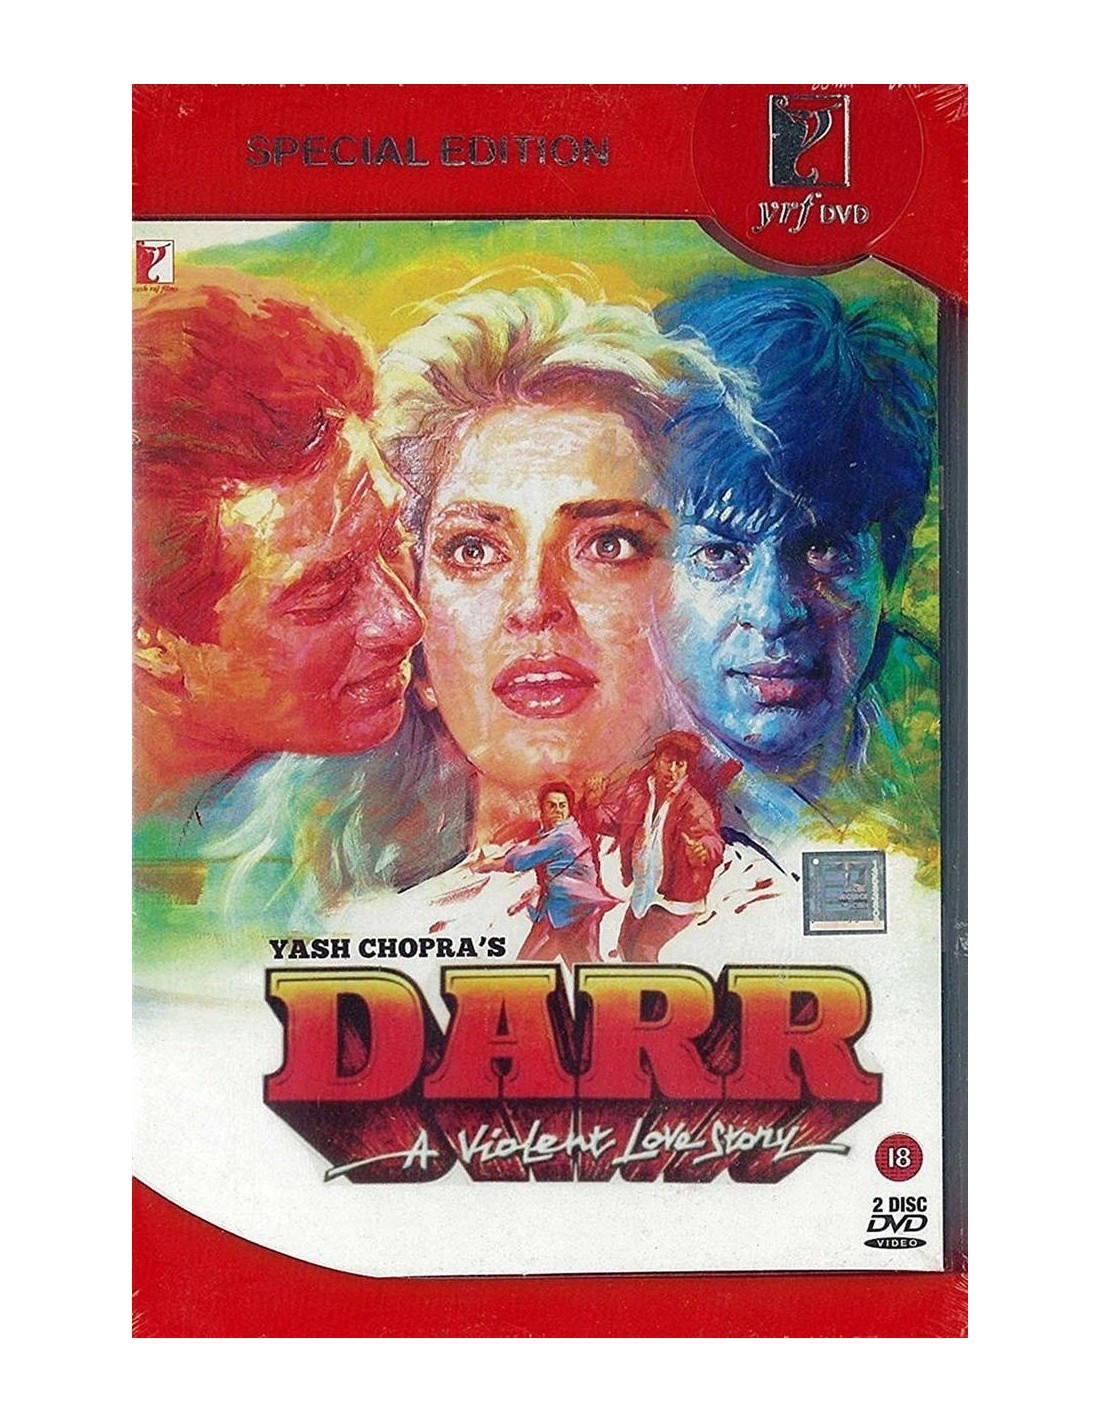 Darr 1993 BD50 1080p Untouched BluRay YrF DRs | 46 GB |